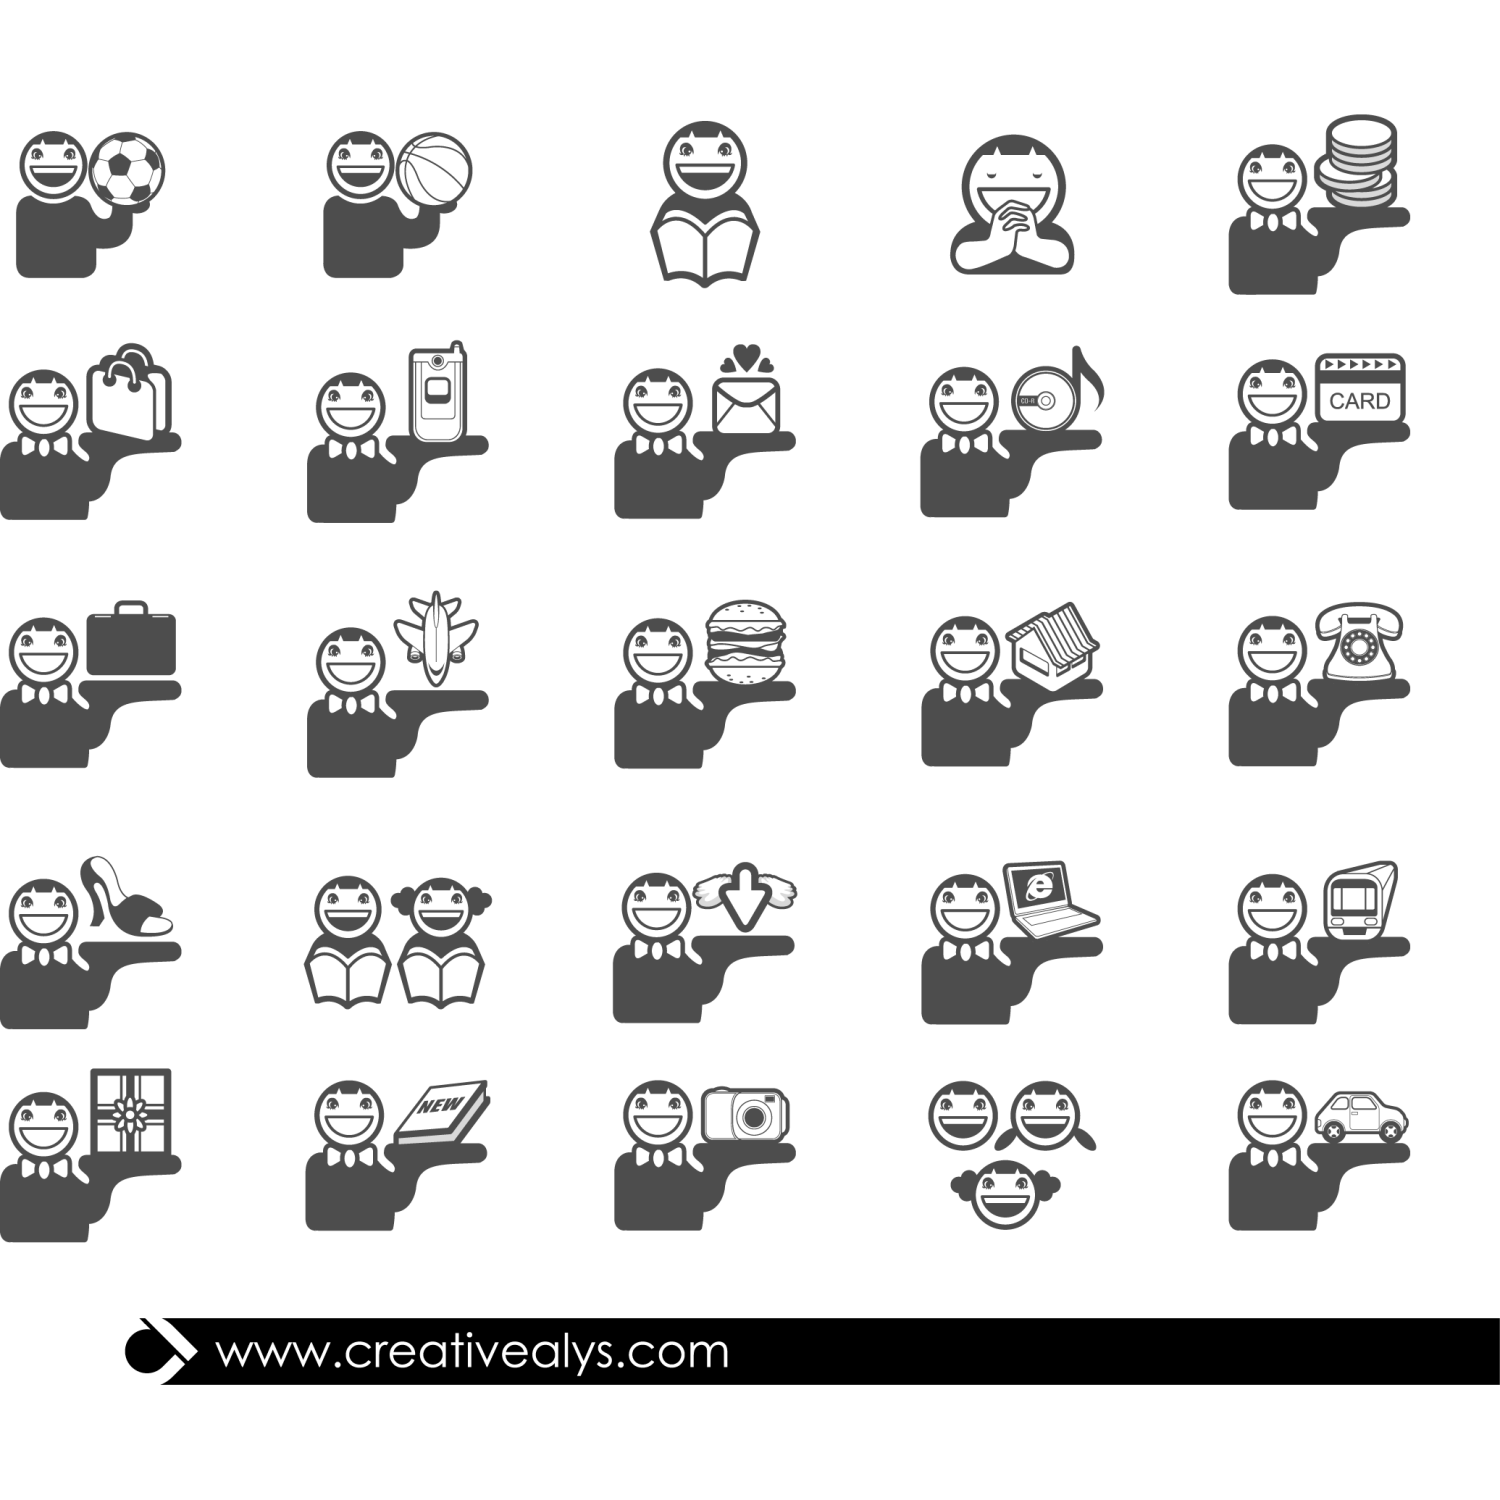 Flat Person Icons